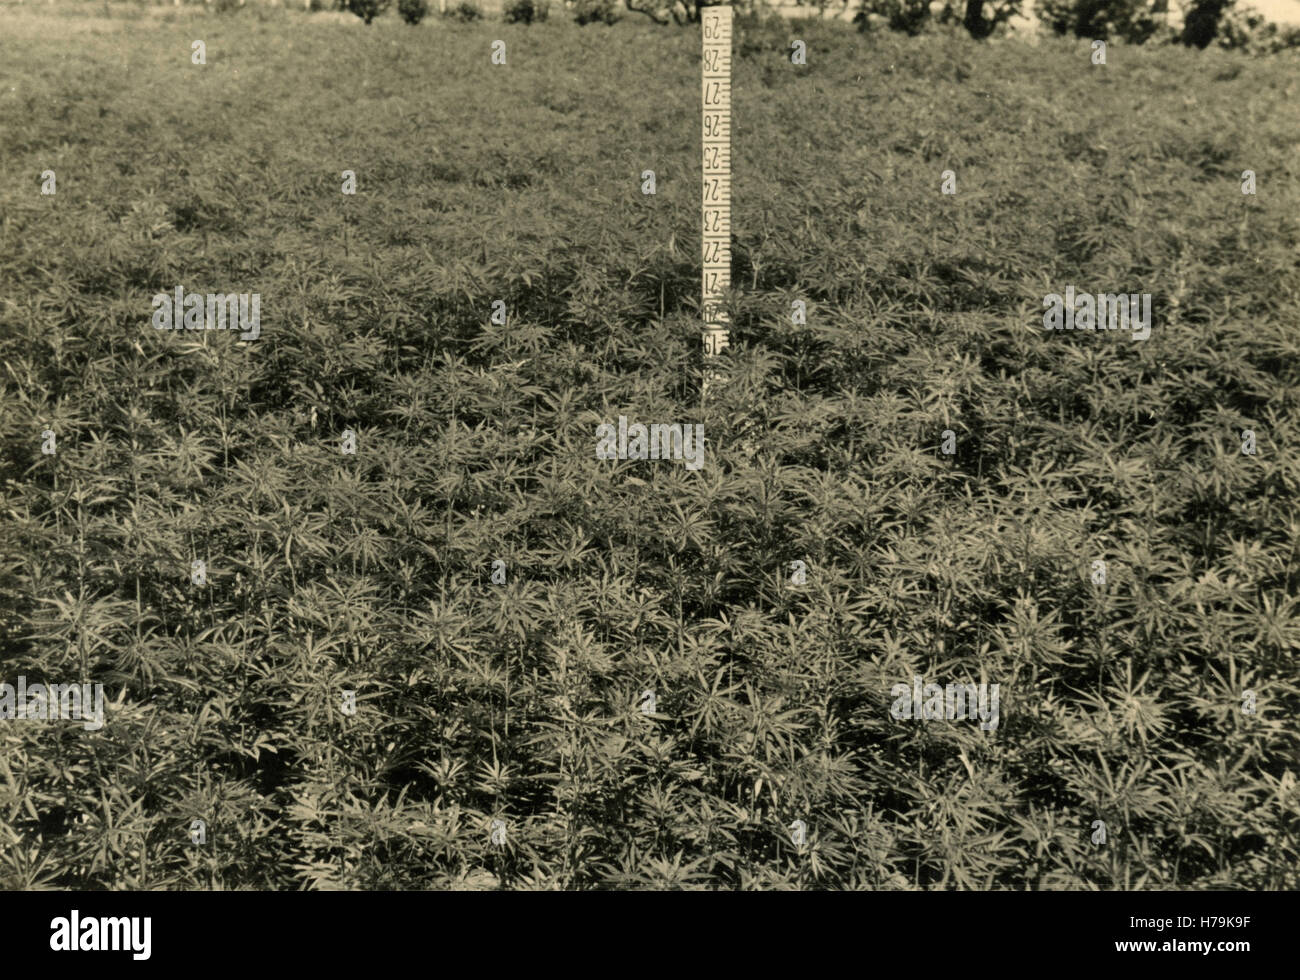 Industrial hemp cultivation, Italy - Stock Image